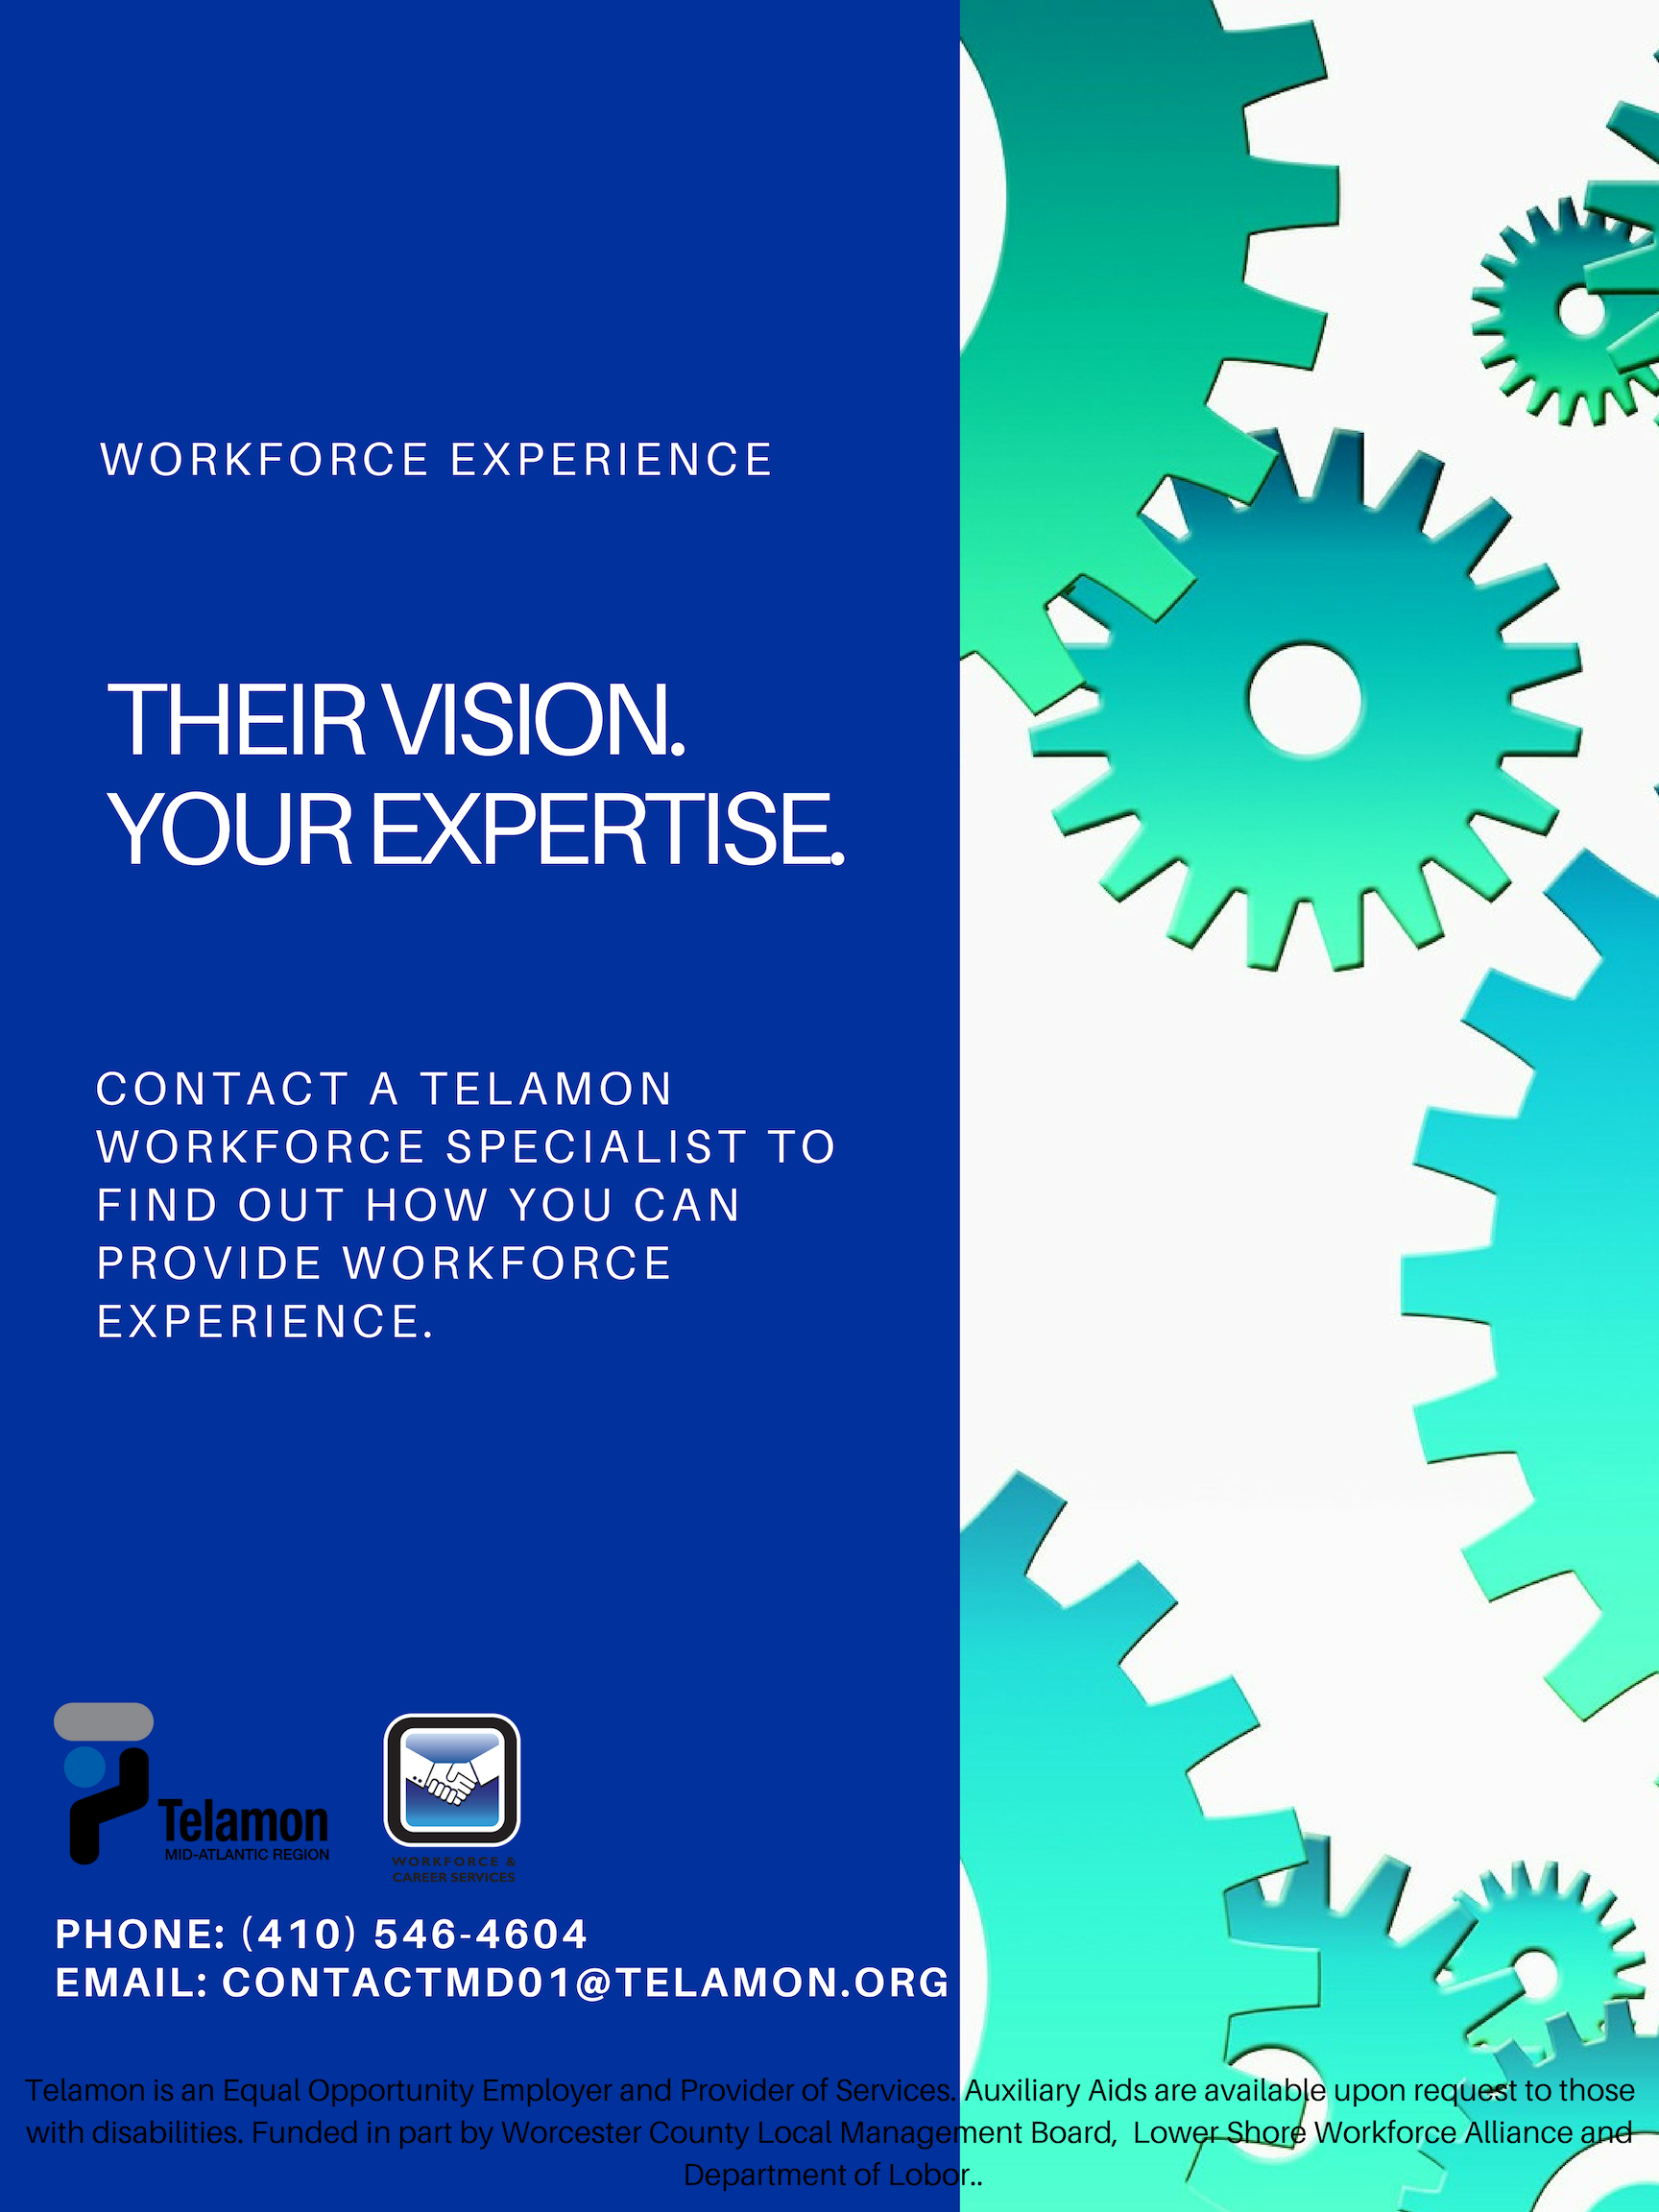 Telamon Corp. - Empowering Individuals, Improving CommunitiesSince 1965, Telamon has helped individuals have access to educational services that lead to better jobs, better lives and better communities.Telamon offers three lines of service to ensure they fulfill their mission:Workforce & Career ServicesEarly Childhood & Family SupportHousing & Financial Empowermentwww.telamon.org